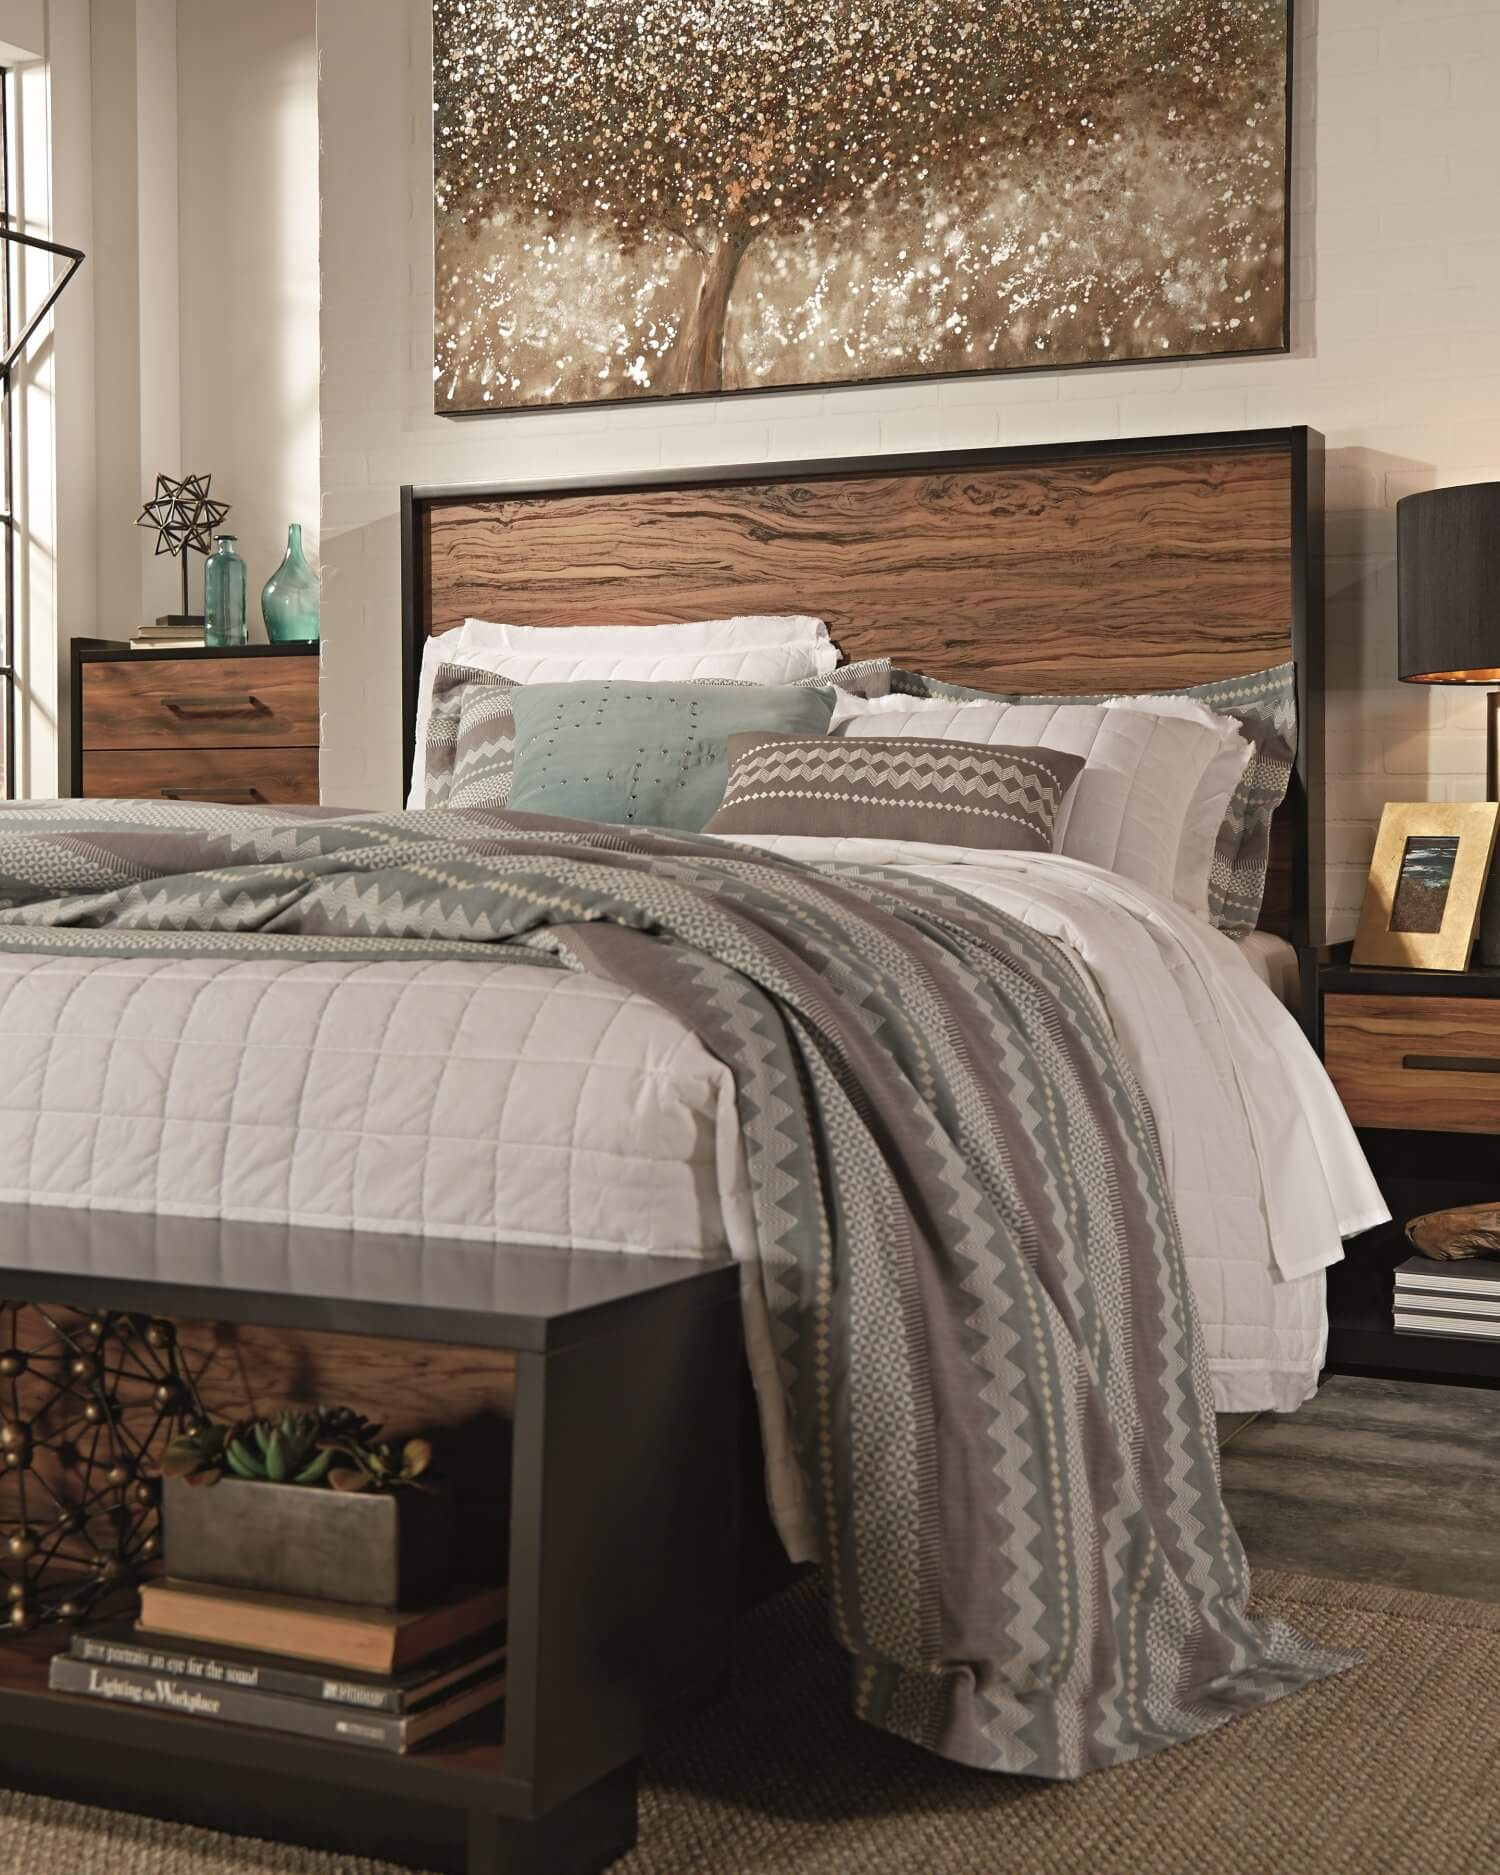 Contemporary black and brown queen bedroom set with dresser and night stand